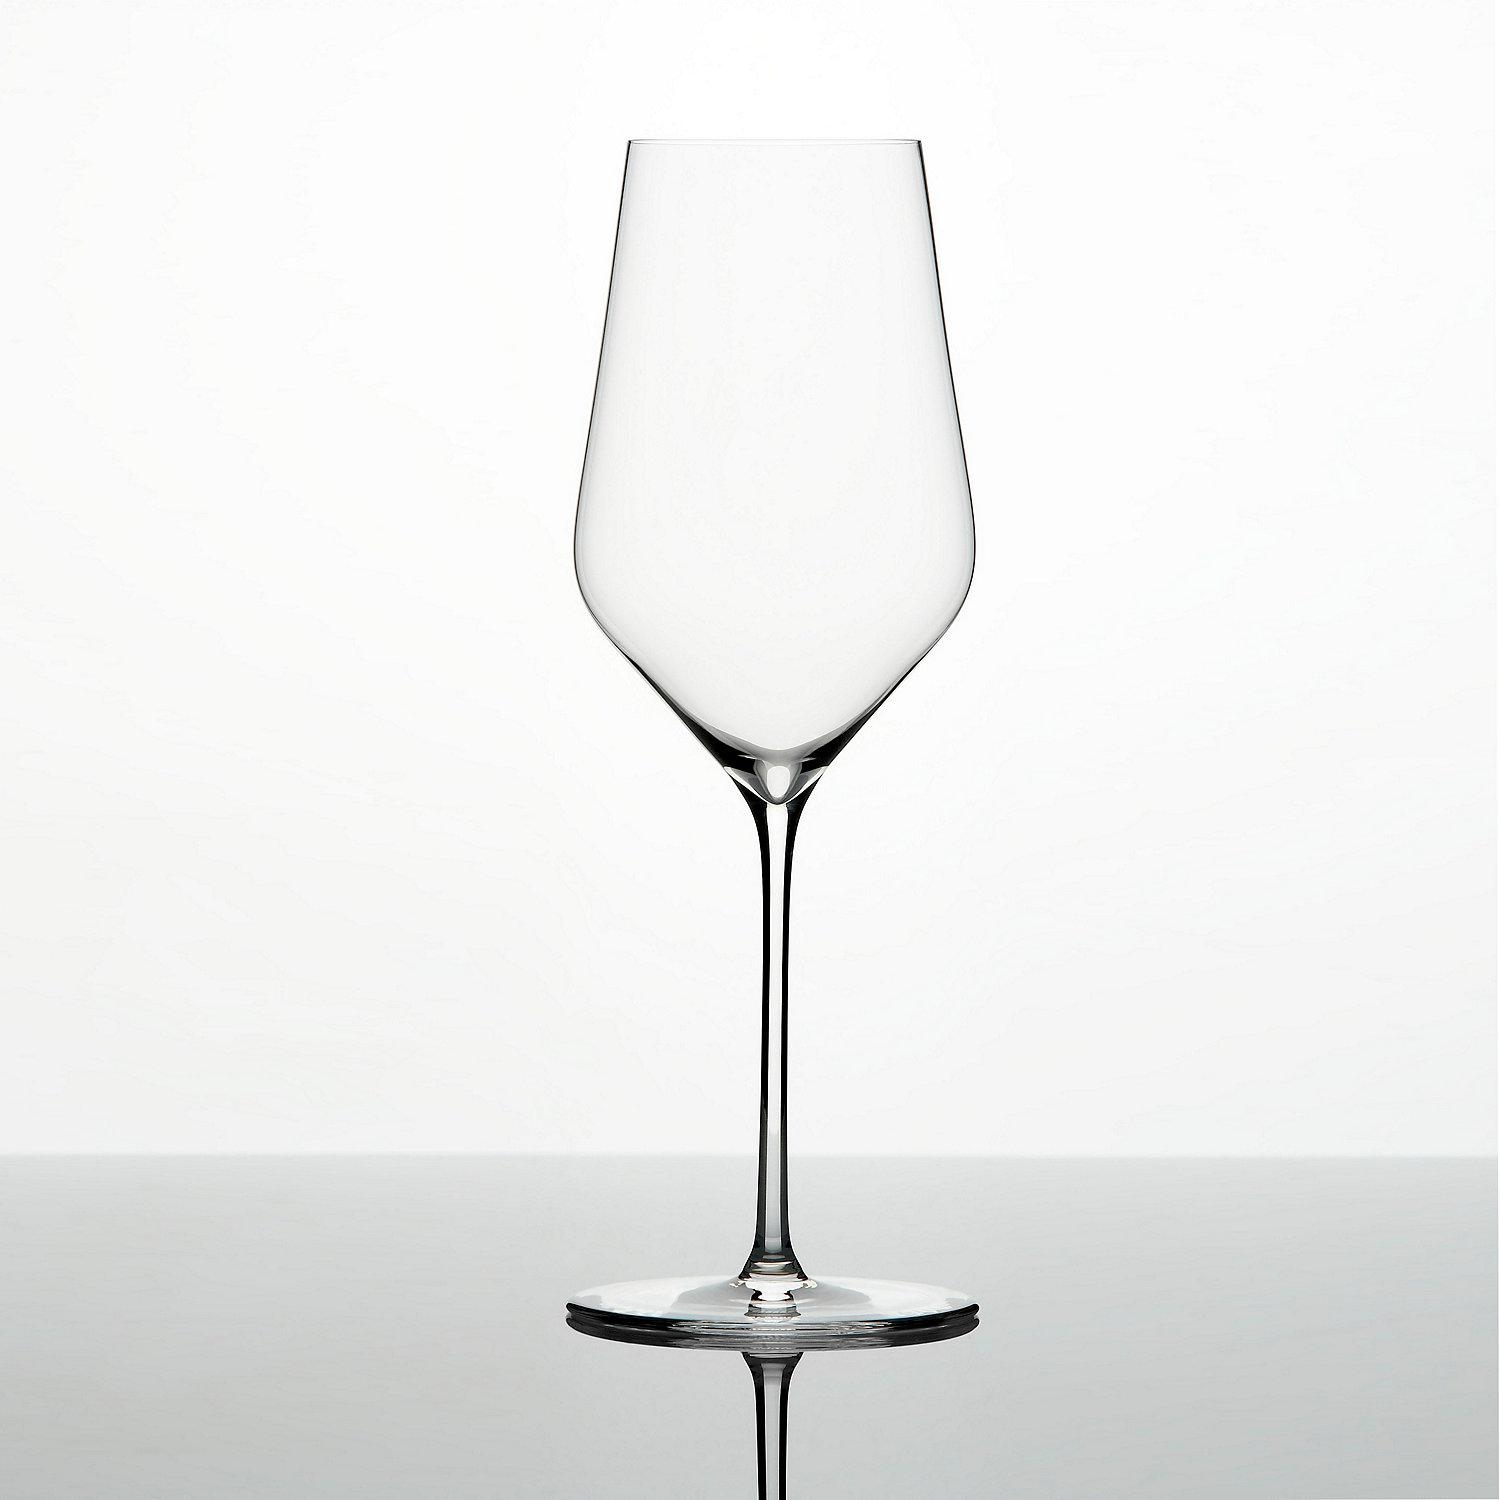 Zalto Denk'art White Wine Glass – Wine Enthusiast Intended For Martini Glass Wall Art (View 13 of 20)